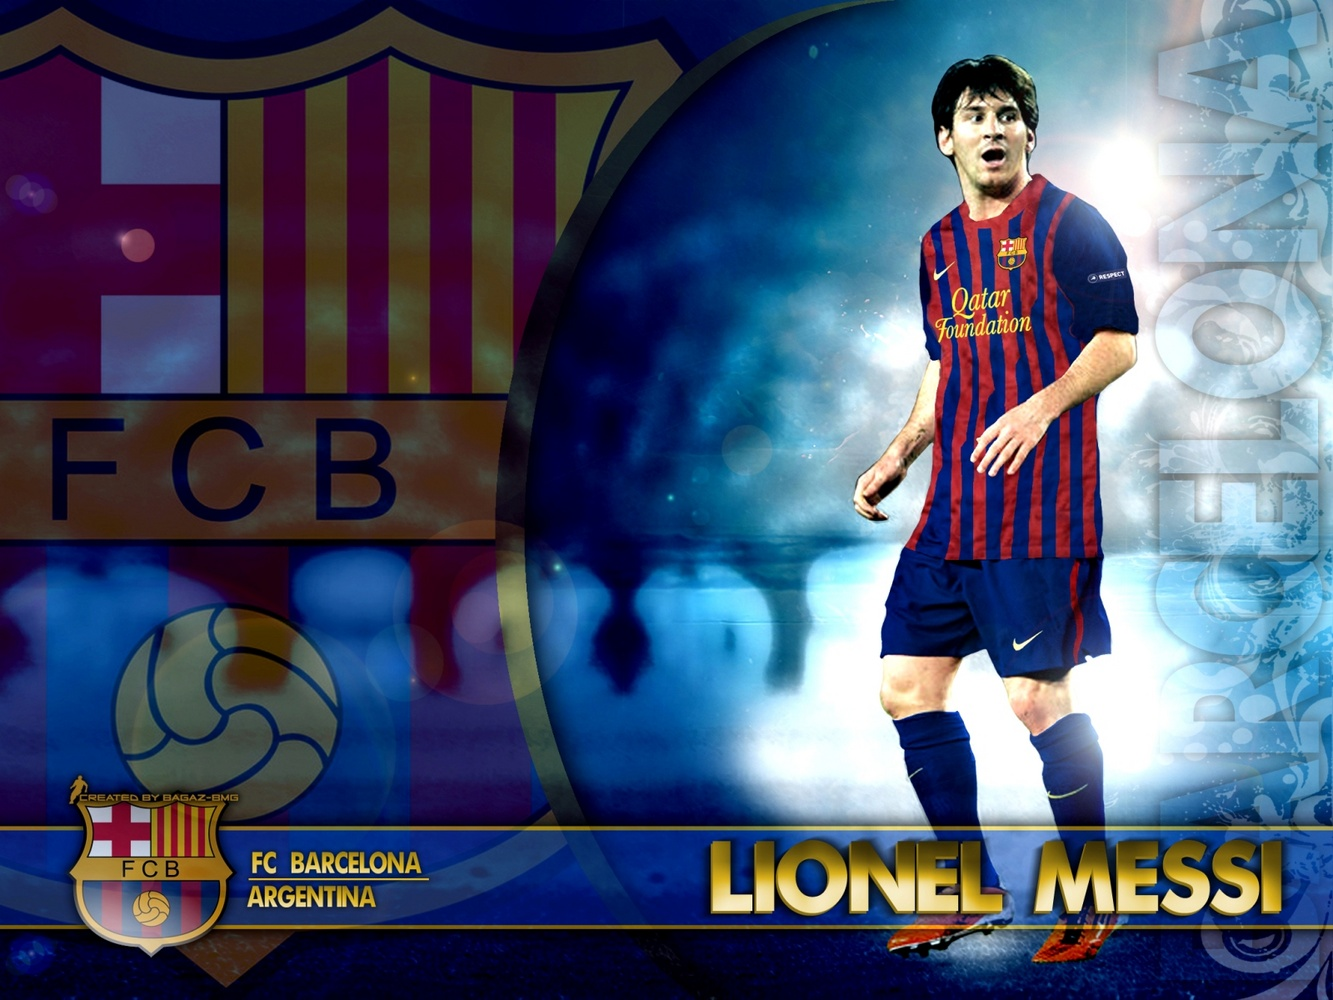 lionel messi wallpaper lionel messi wallpaper messi barcelona messi 1333x1000